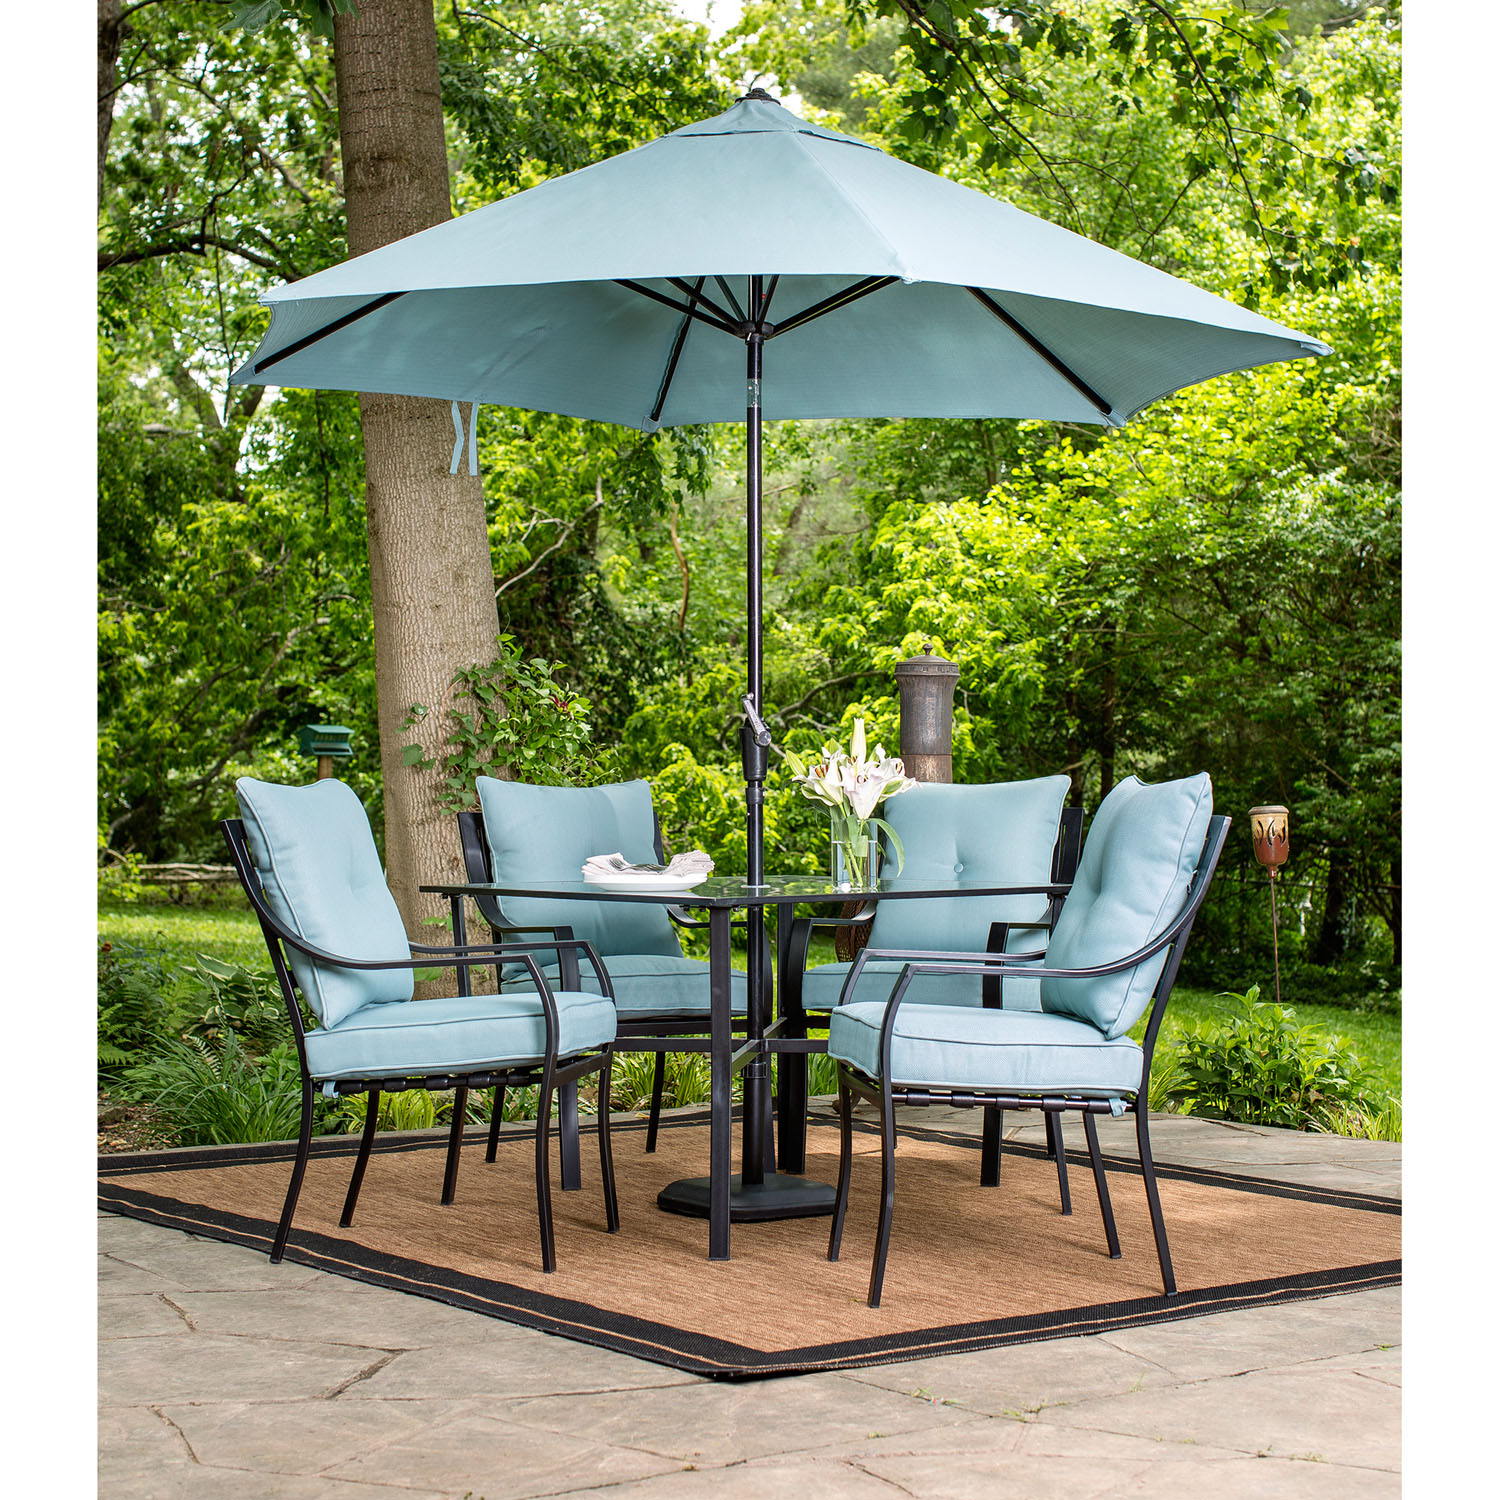 hanover lavallette 5 piece outdoor dining set and table umbrella with stand